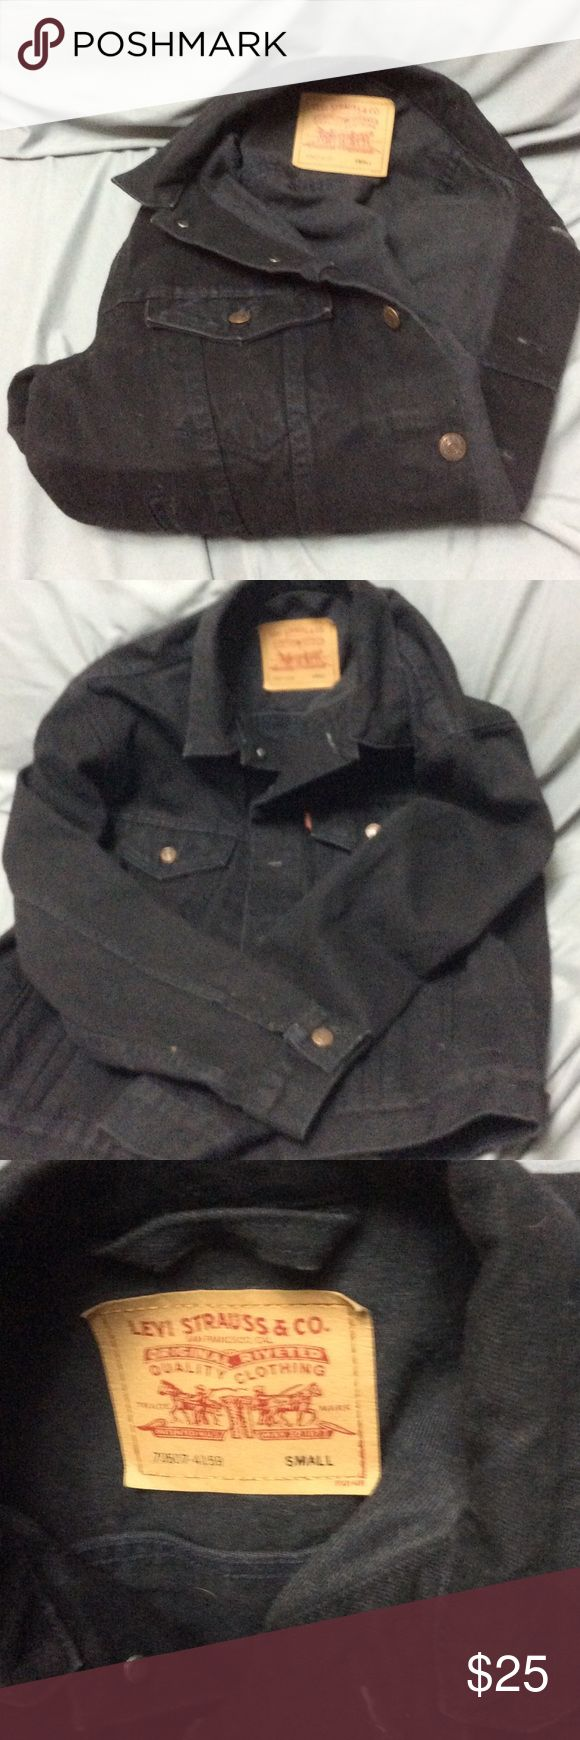 BLACK DUNGAREE JACKET Black Dungaree Jacket- with Copper Colored buttons with 2 pockets on the front - SIZE SMALL ( MENS) BUT FITS LARGE OR EX LARGE-   HARDLY WORN.  I ALSO HAVE A BLACK LEATHER JACKET FOR SALE.. PICS UPON REQUEST.  $75.00 LEVI STRAUSS & CO Jackets & Coats Jean Jackets